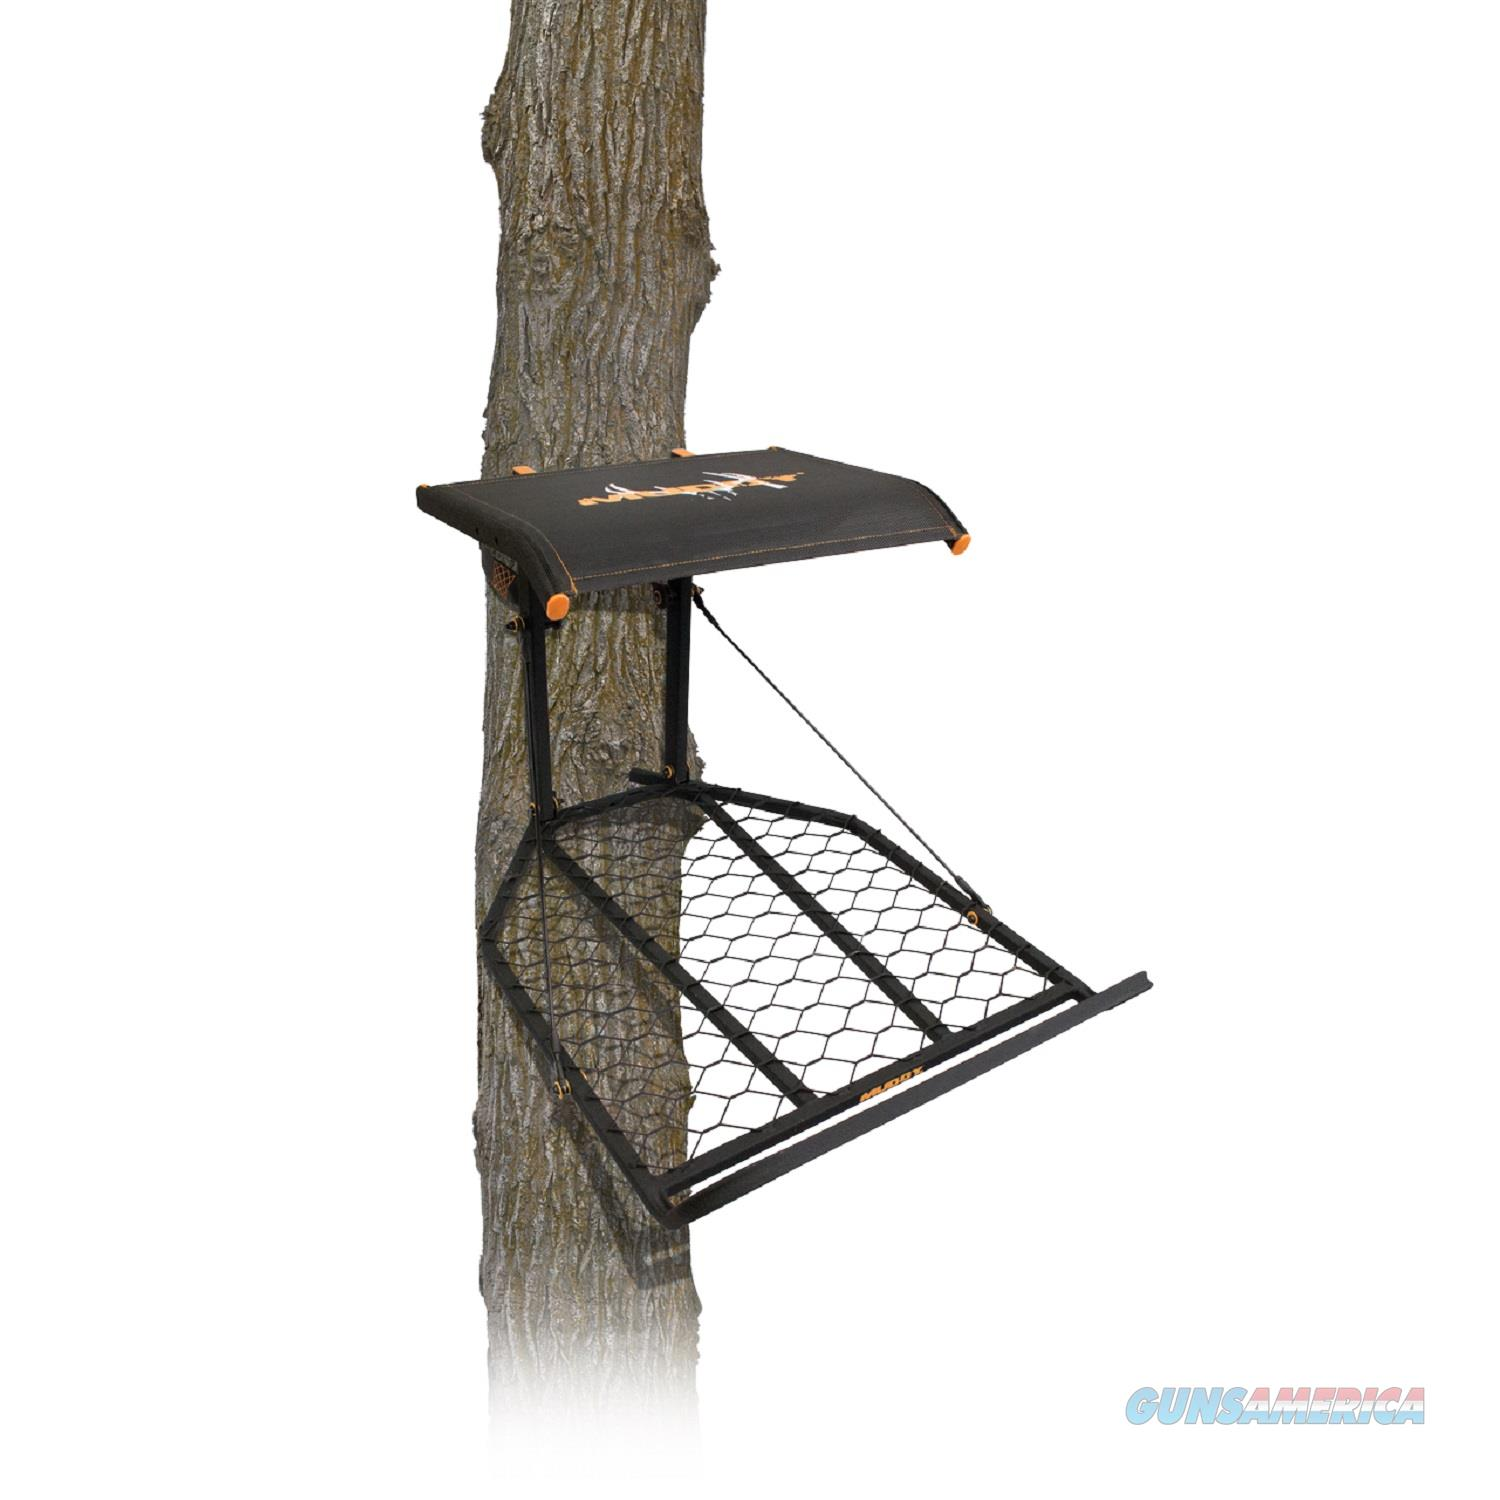 Muddy Boss Xl Hang On Treestand MFP1200  Non-Guns > Hunting Clothing and Equipment > Tree Stands